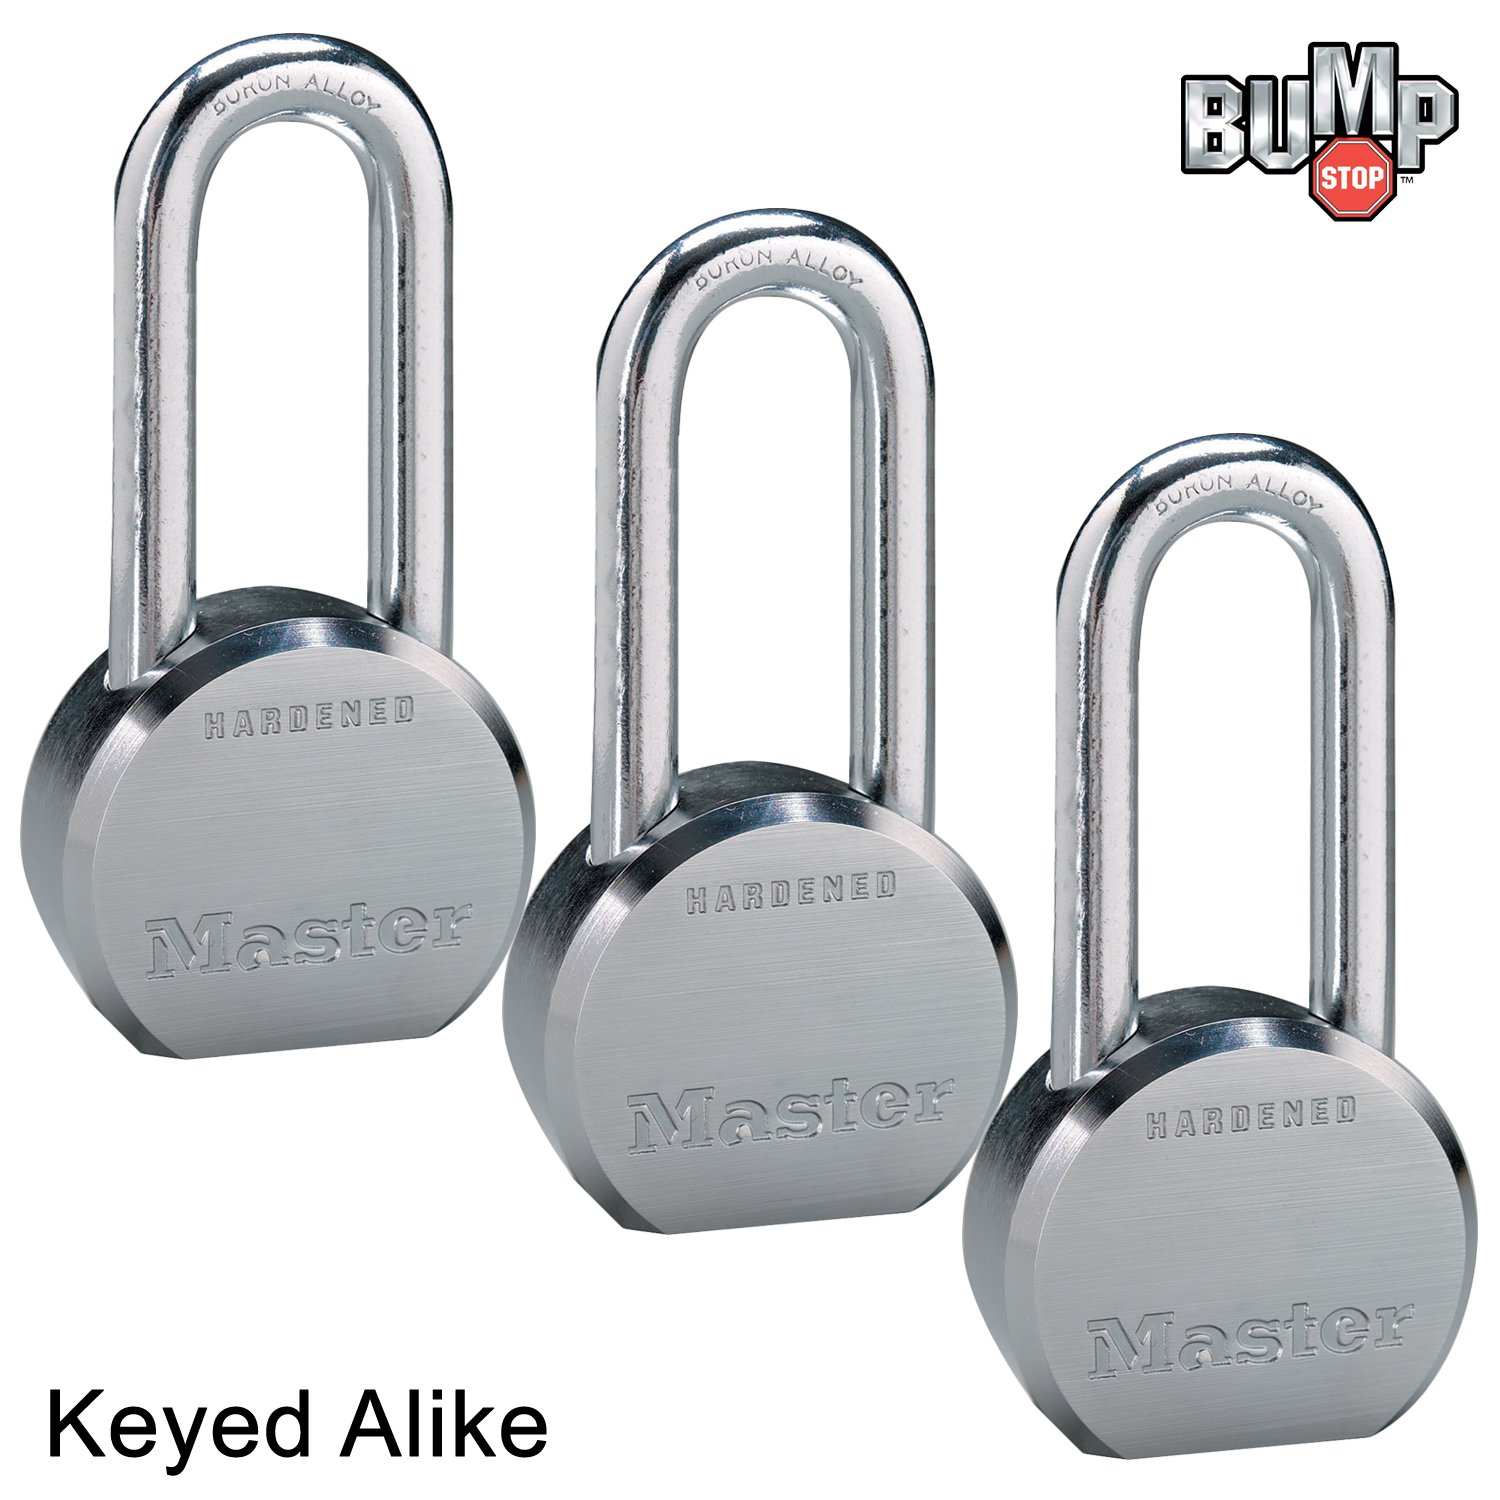 Master Lock - (3) High Security Pro Series Keyed Alike Padlocks 6230NKALH-3 w/ BumpStop Technology